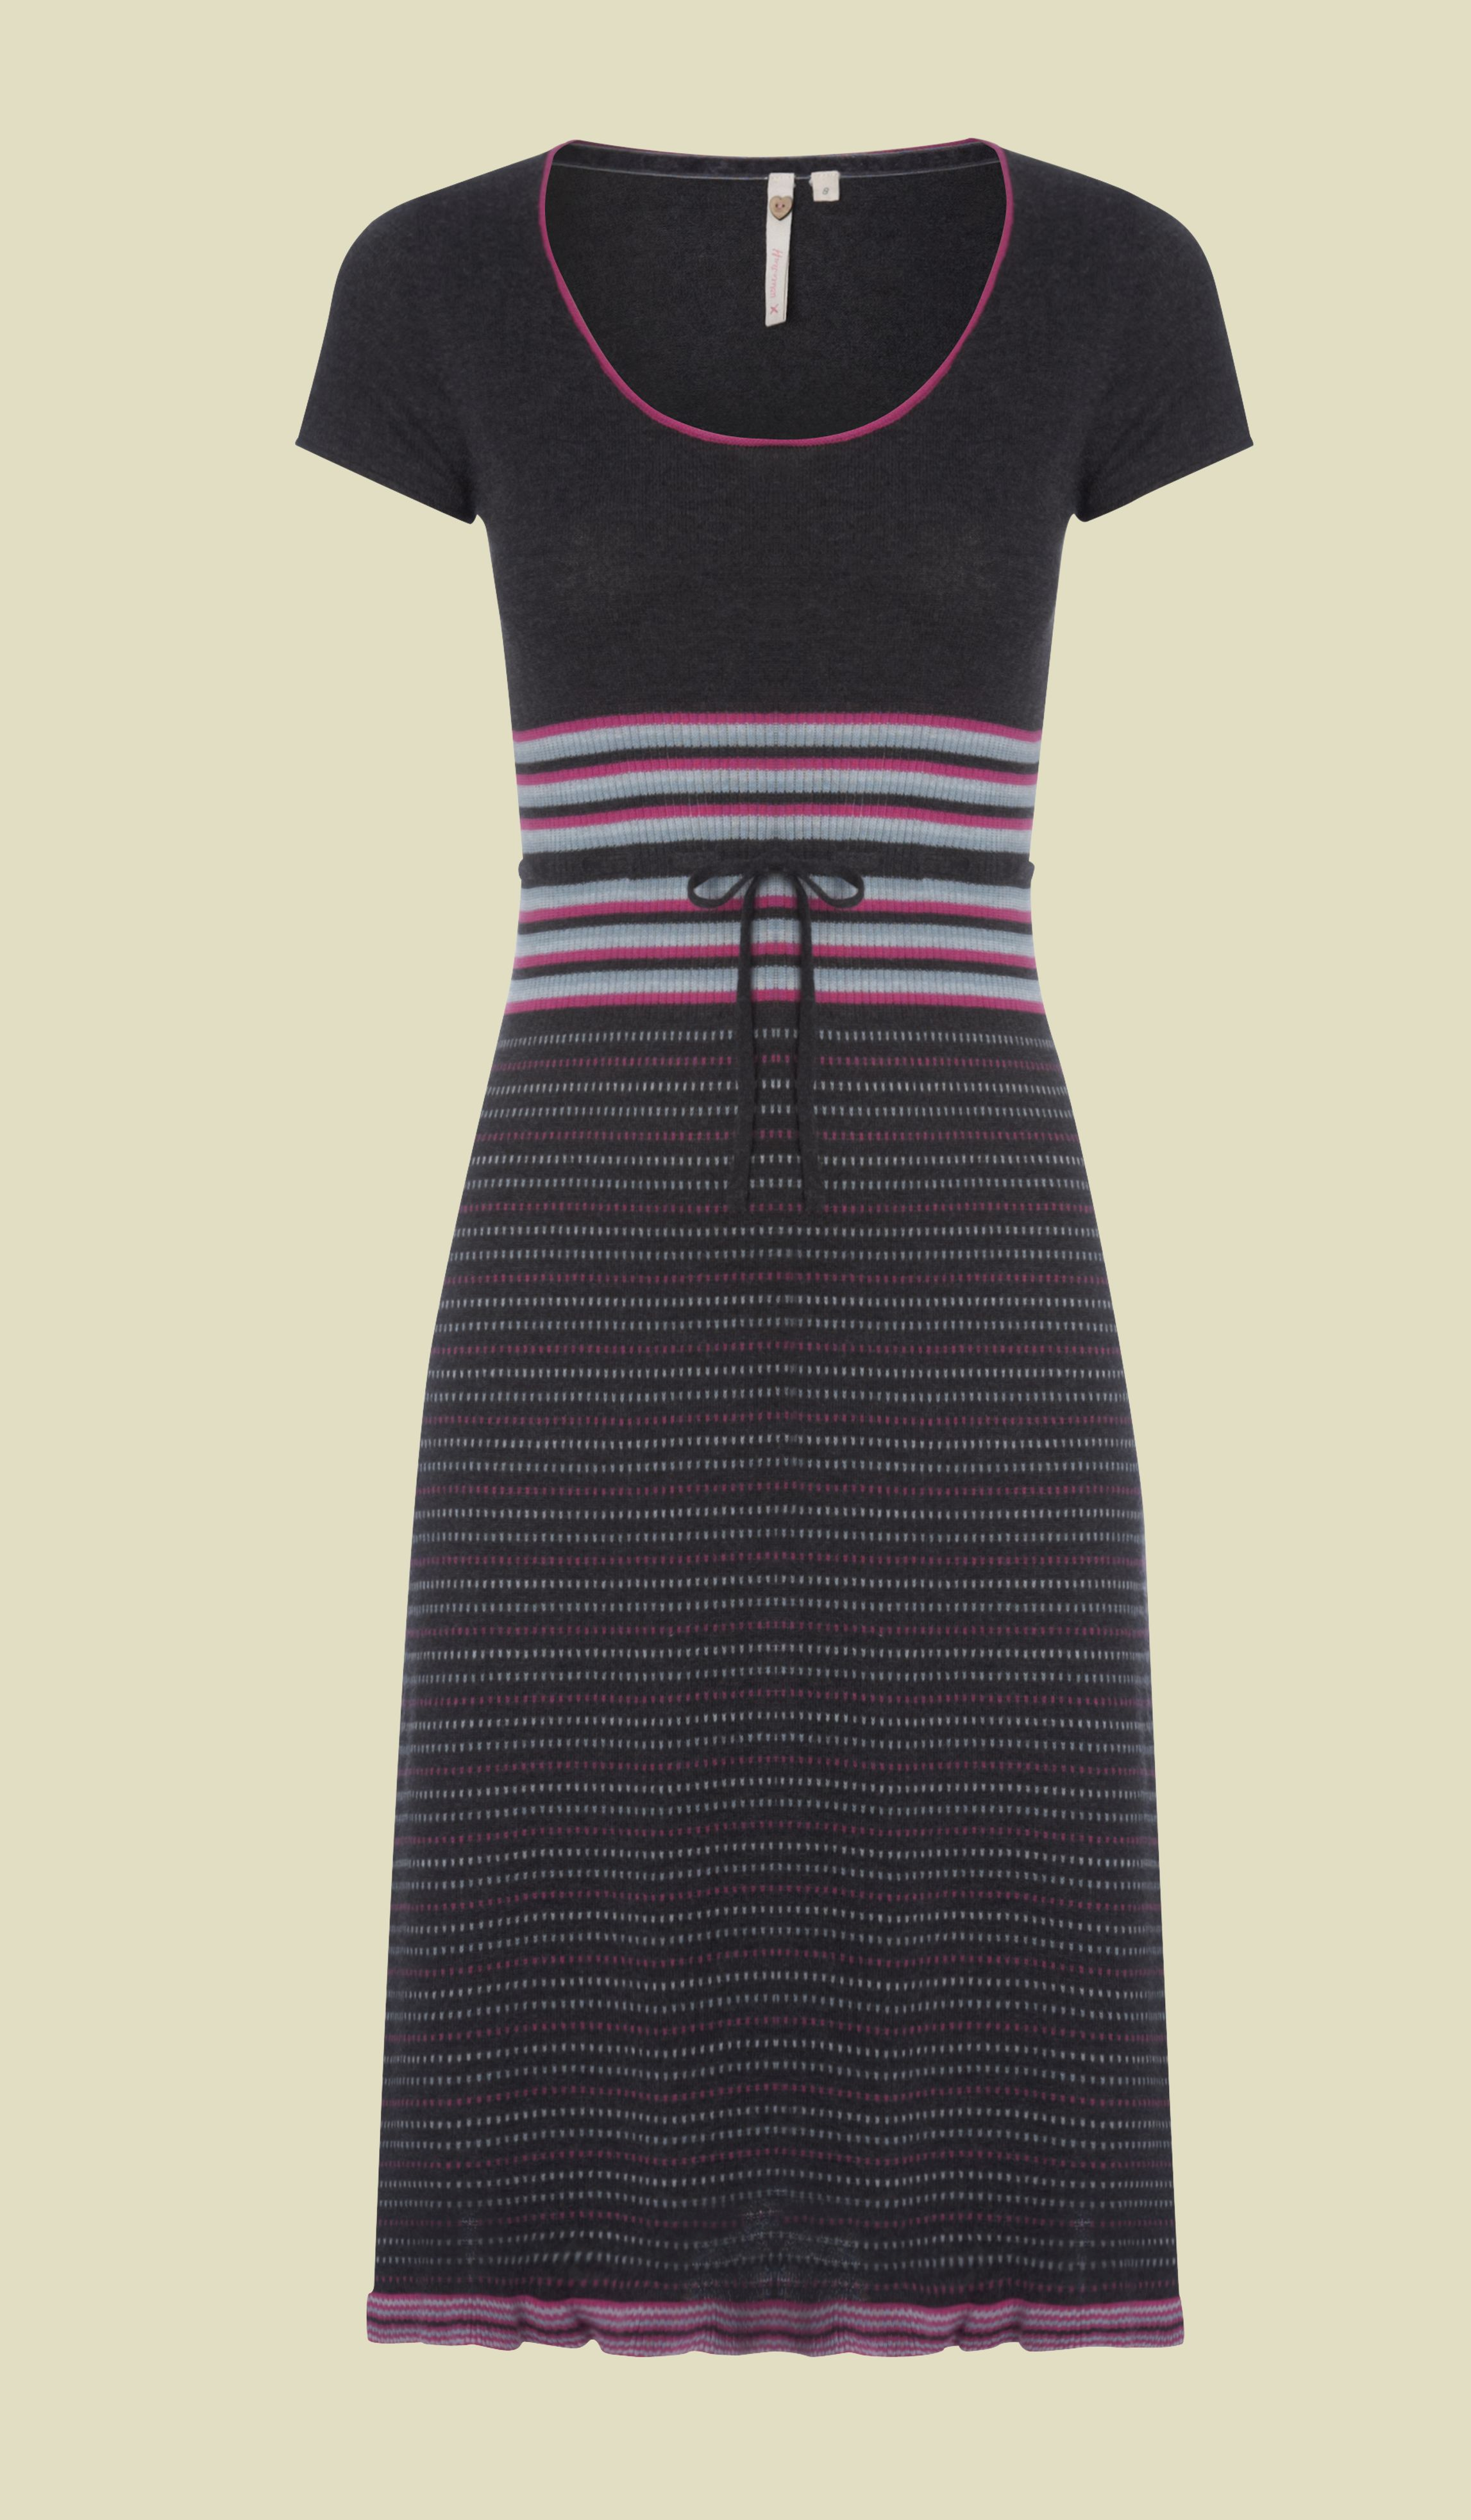 Sally knit dress